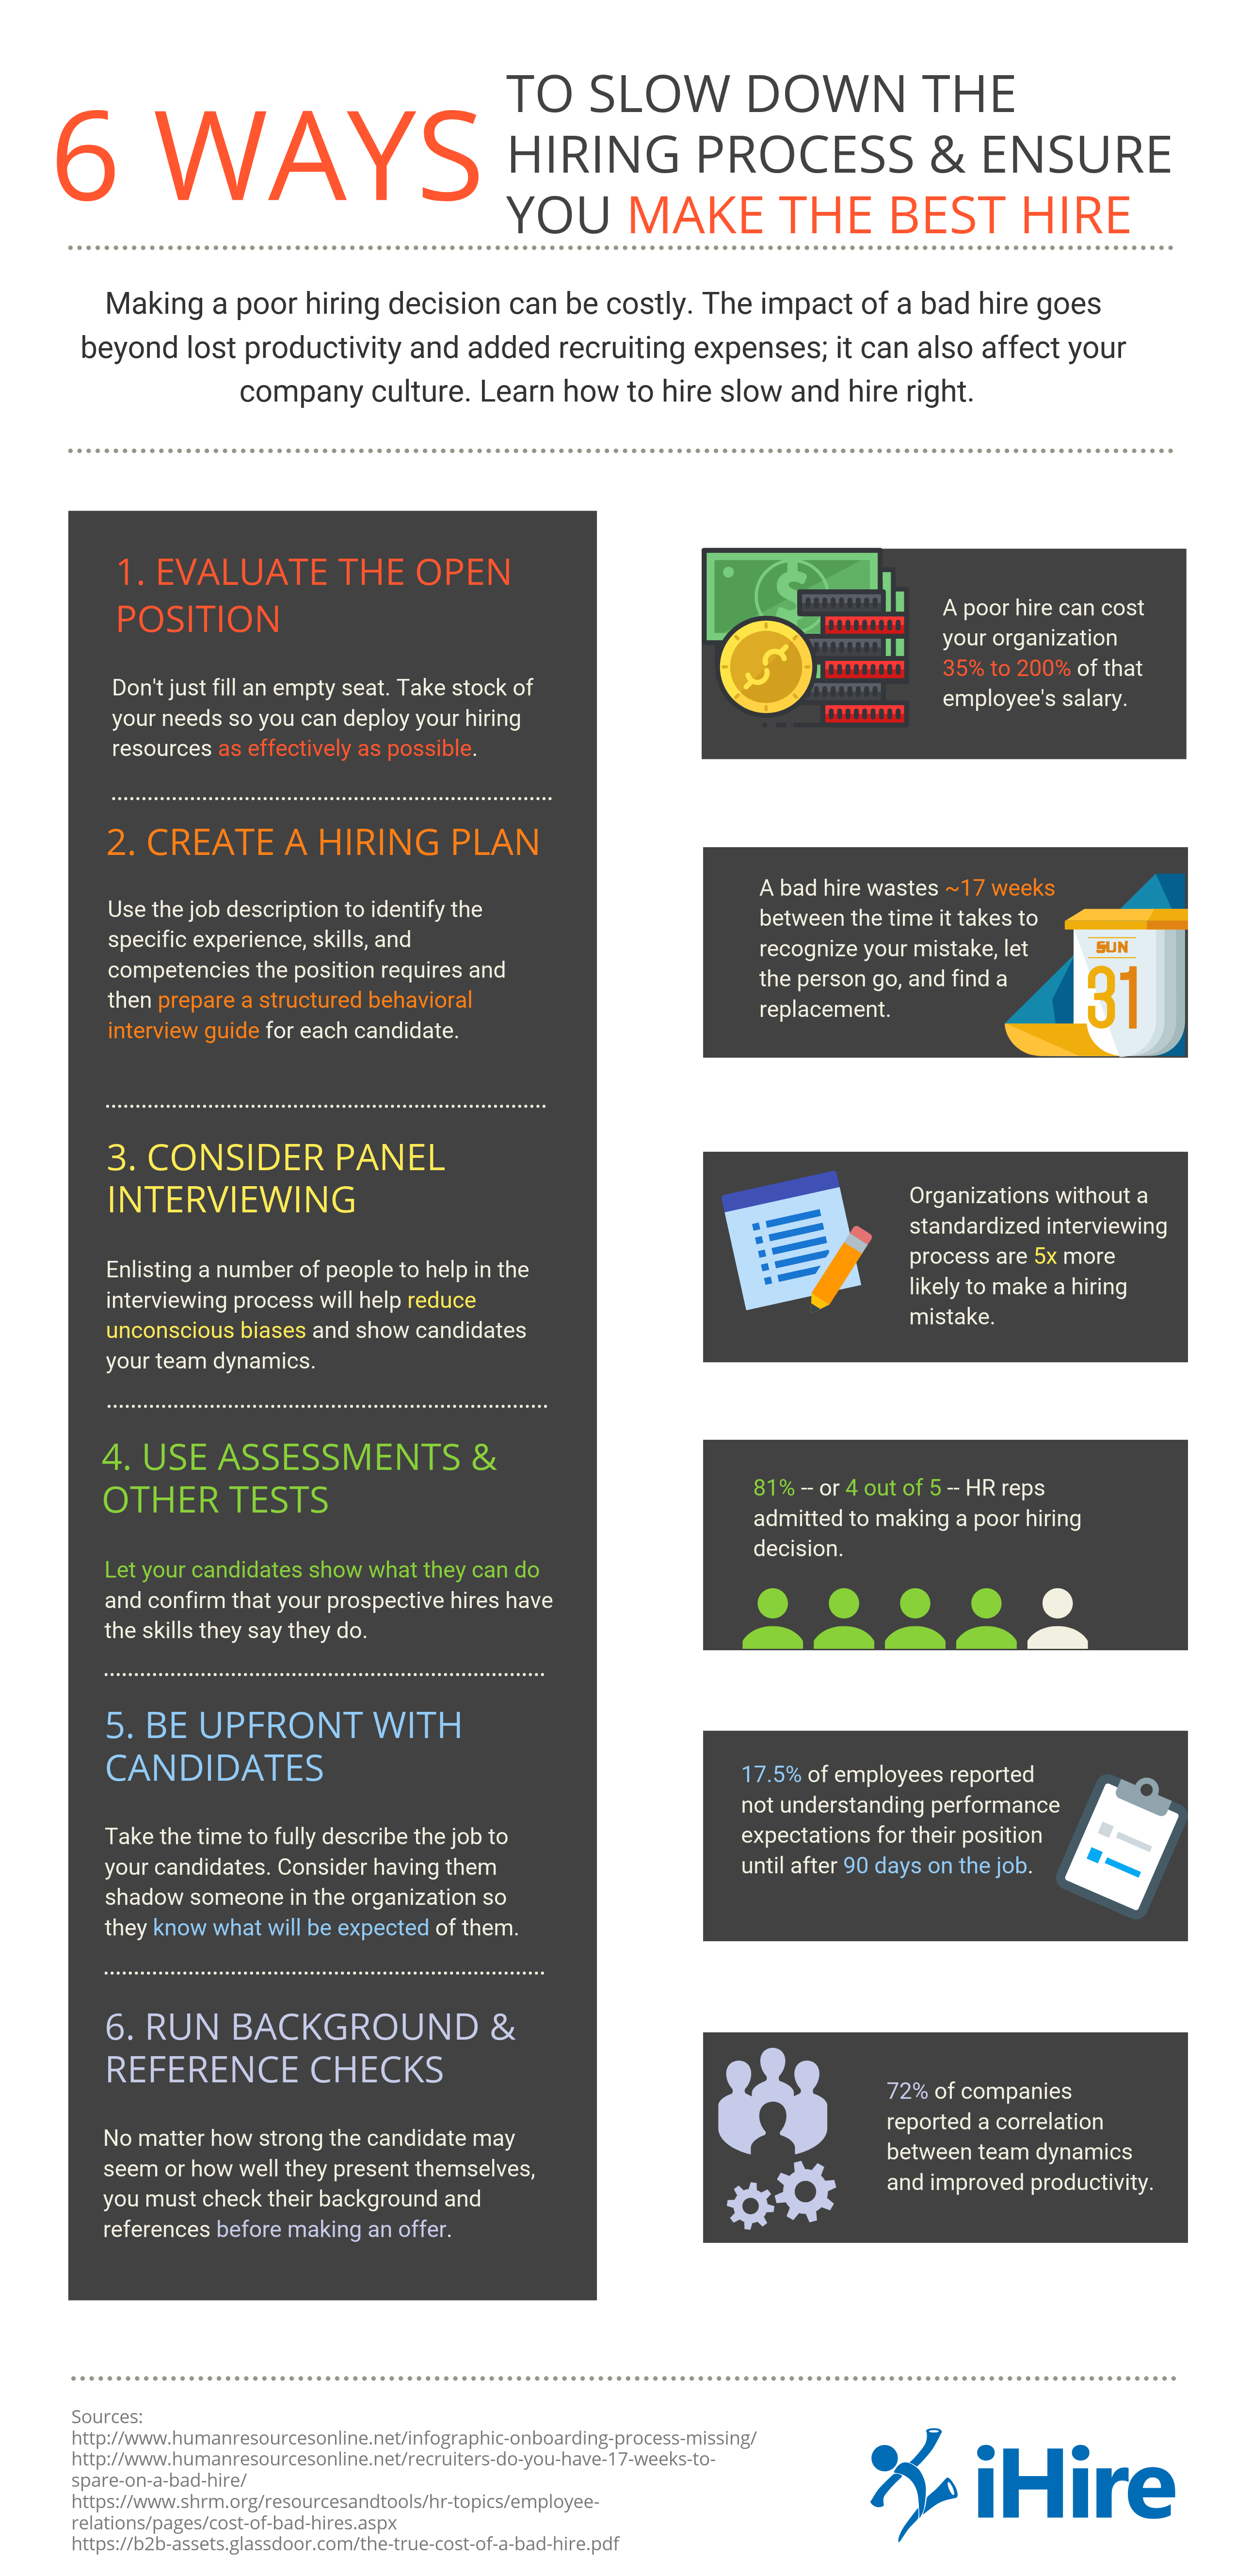 6 ways to slow down the hiring process and ensure you make the best hire. Infographic.